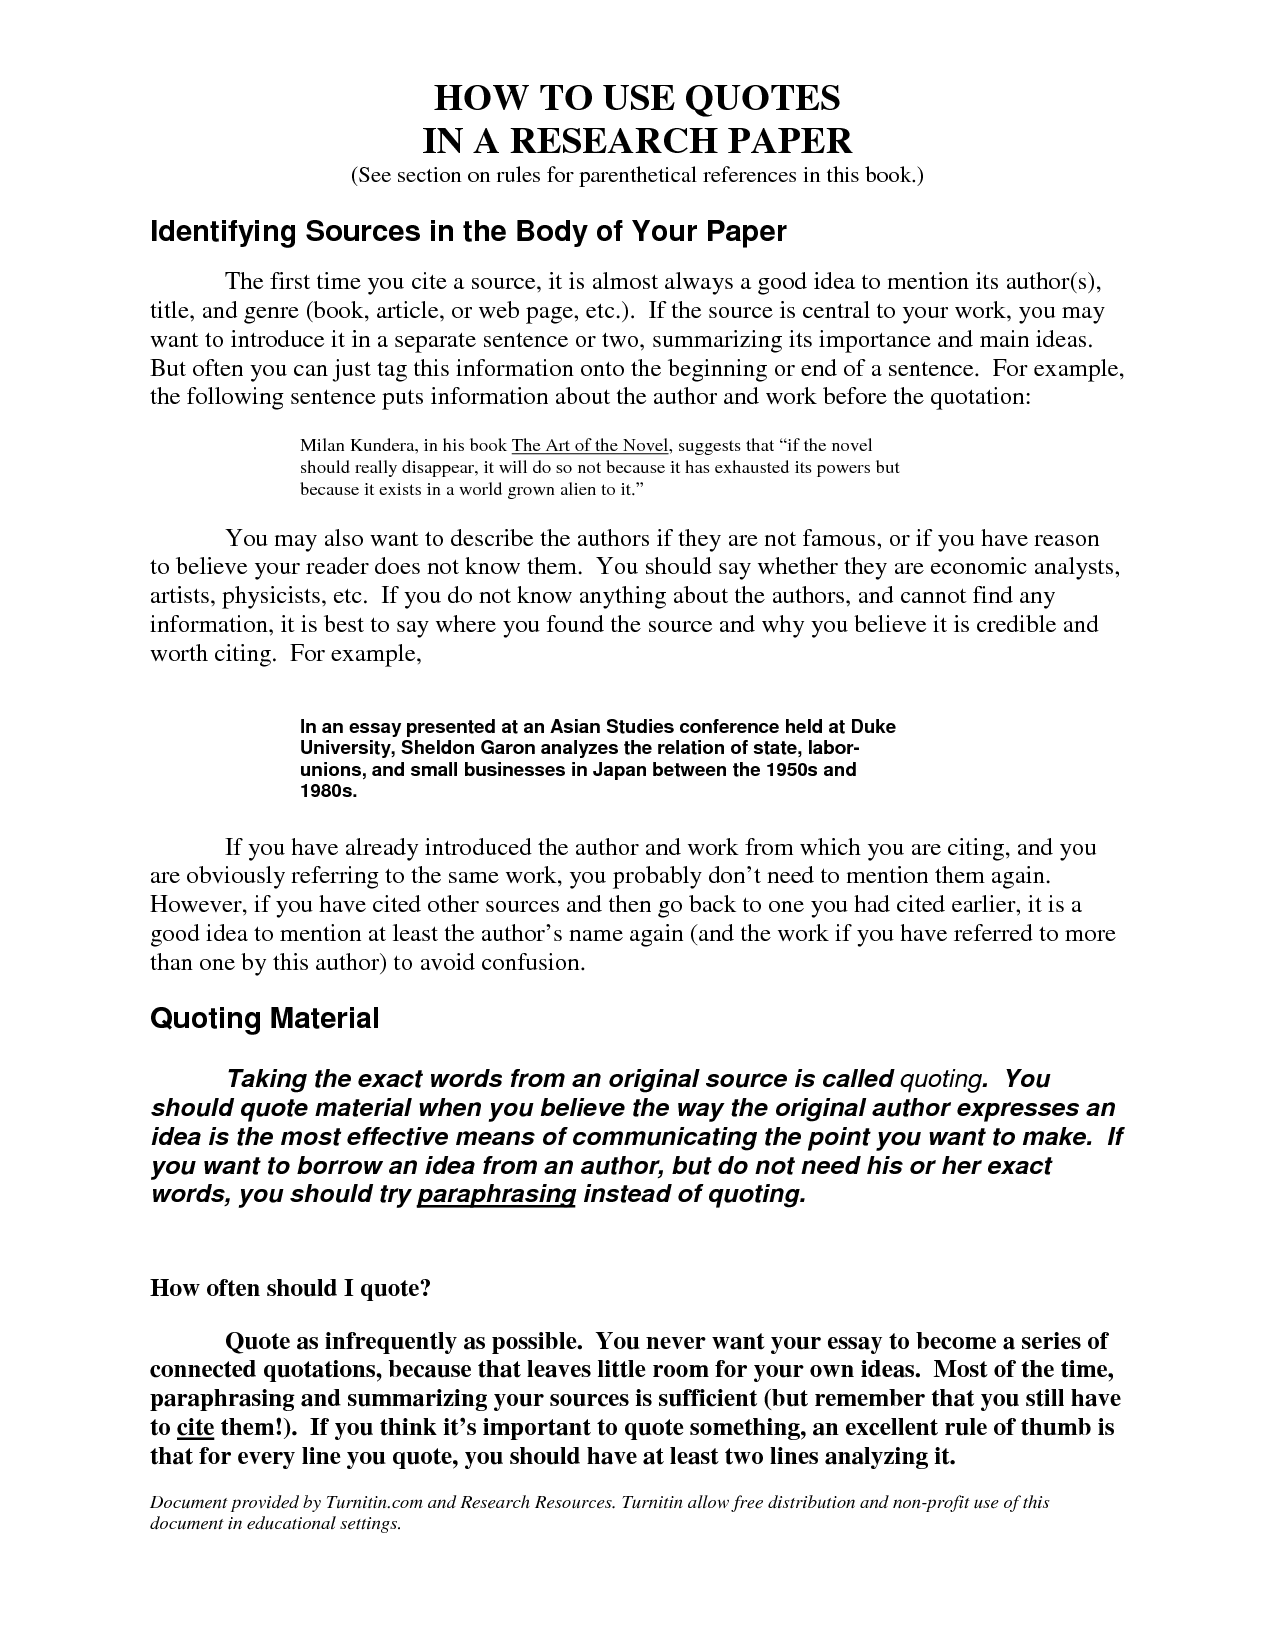 001 How To Use Quotes In An Essay Best Solutions Of Writing Essays Marvelous Embedding On Quotestopics Fearsome Apa Format Large Argumentative Full